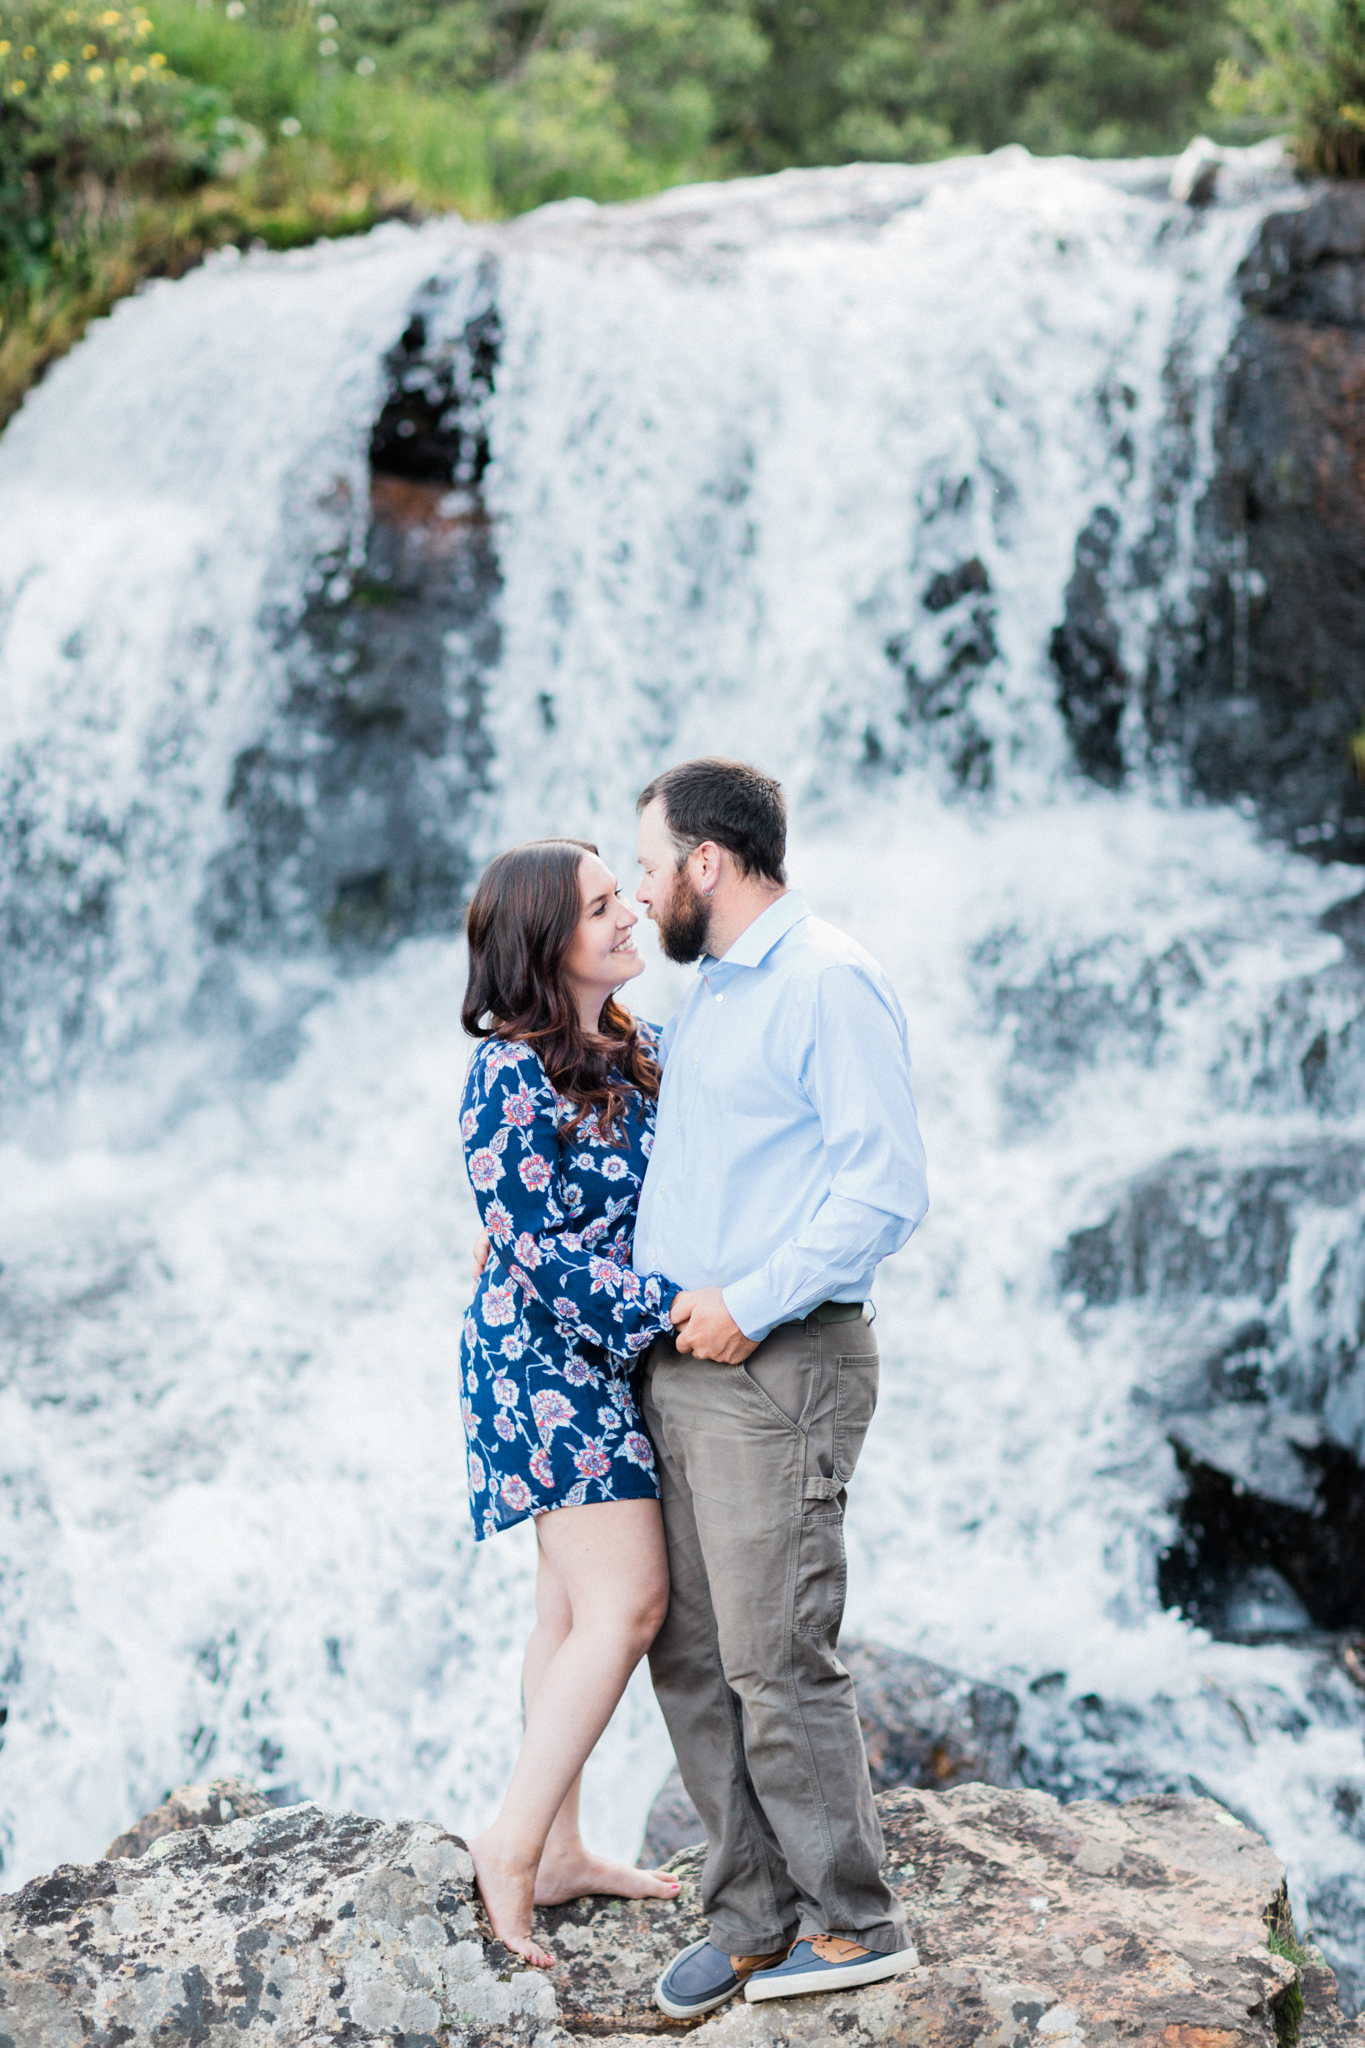 Ally_Joe_Breckenridge_Engagement_Session_18